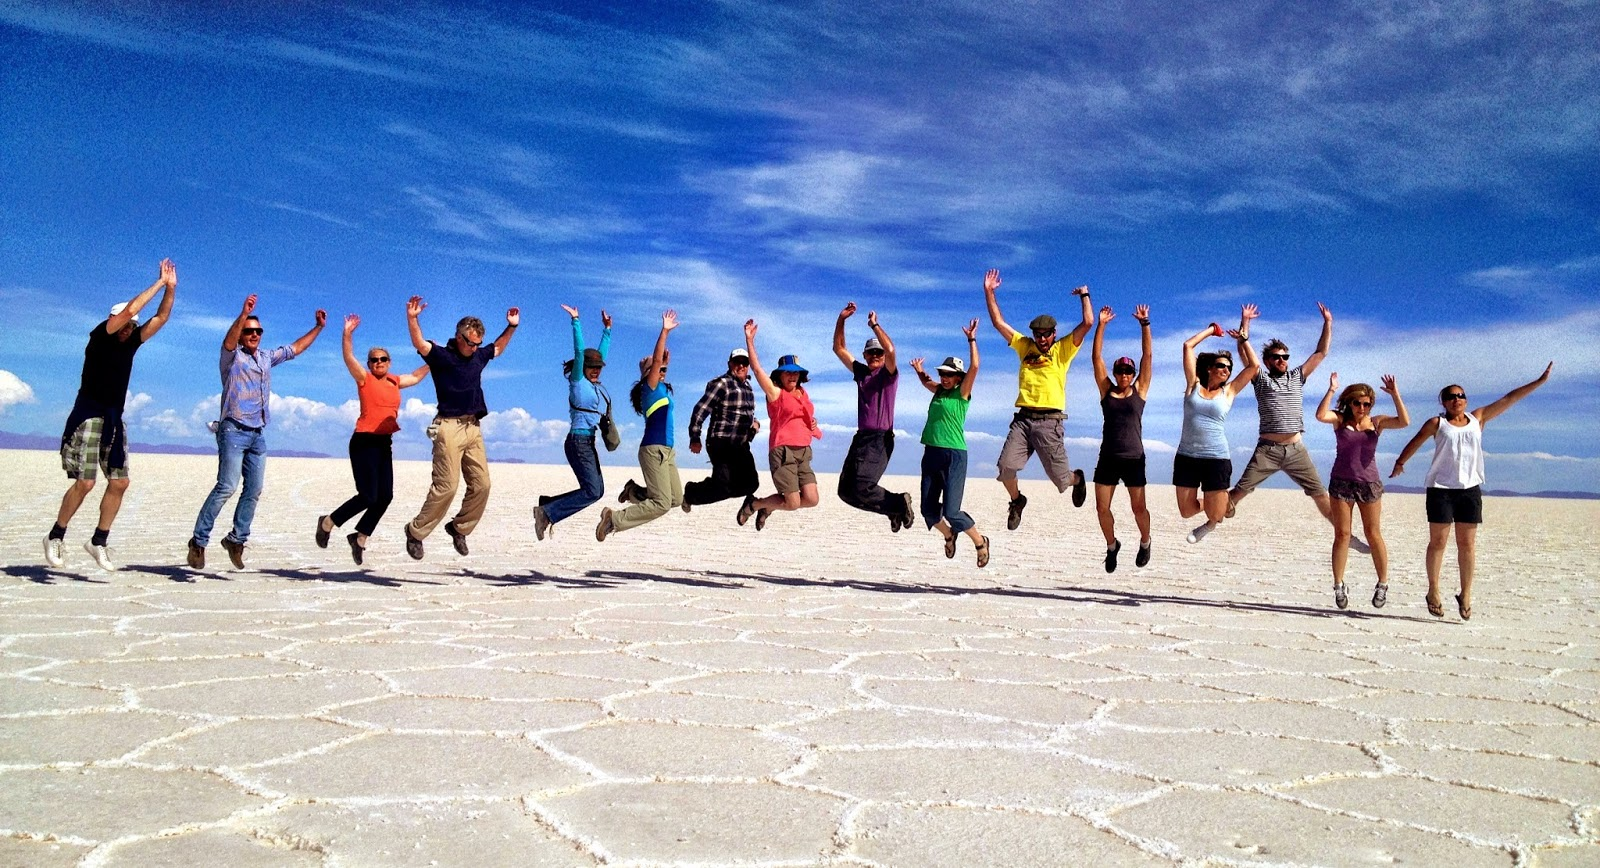 A colourful group picture in the Salar de Uyuni